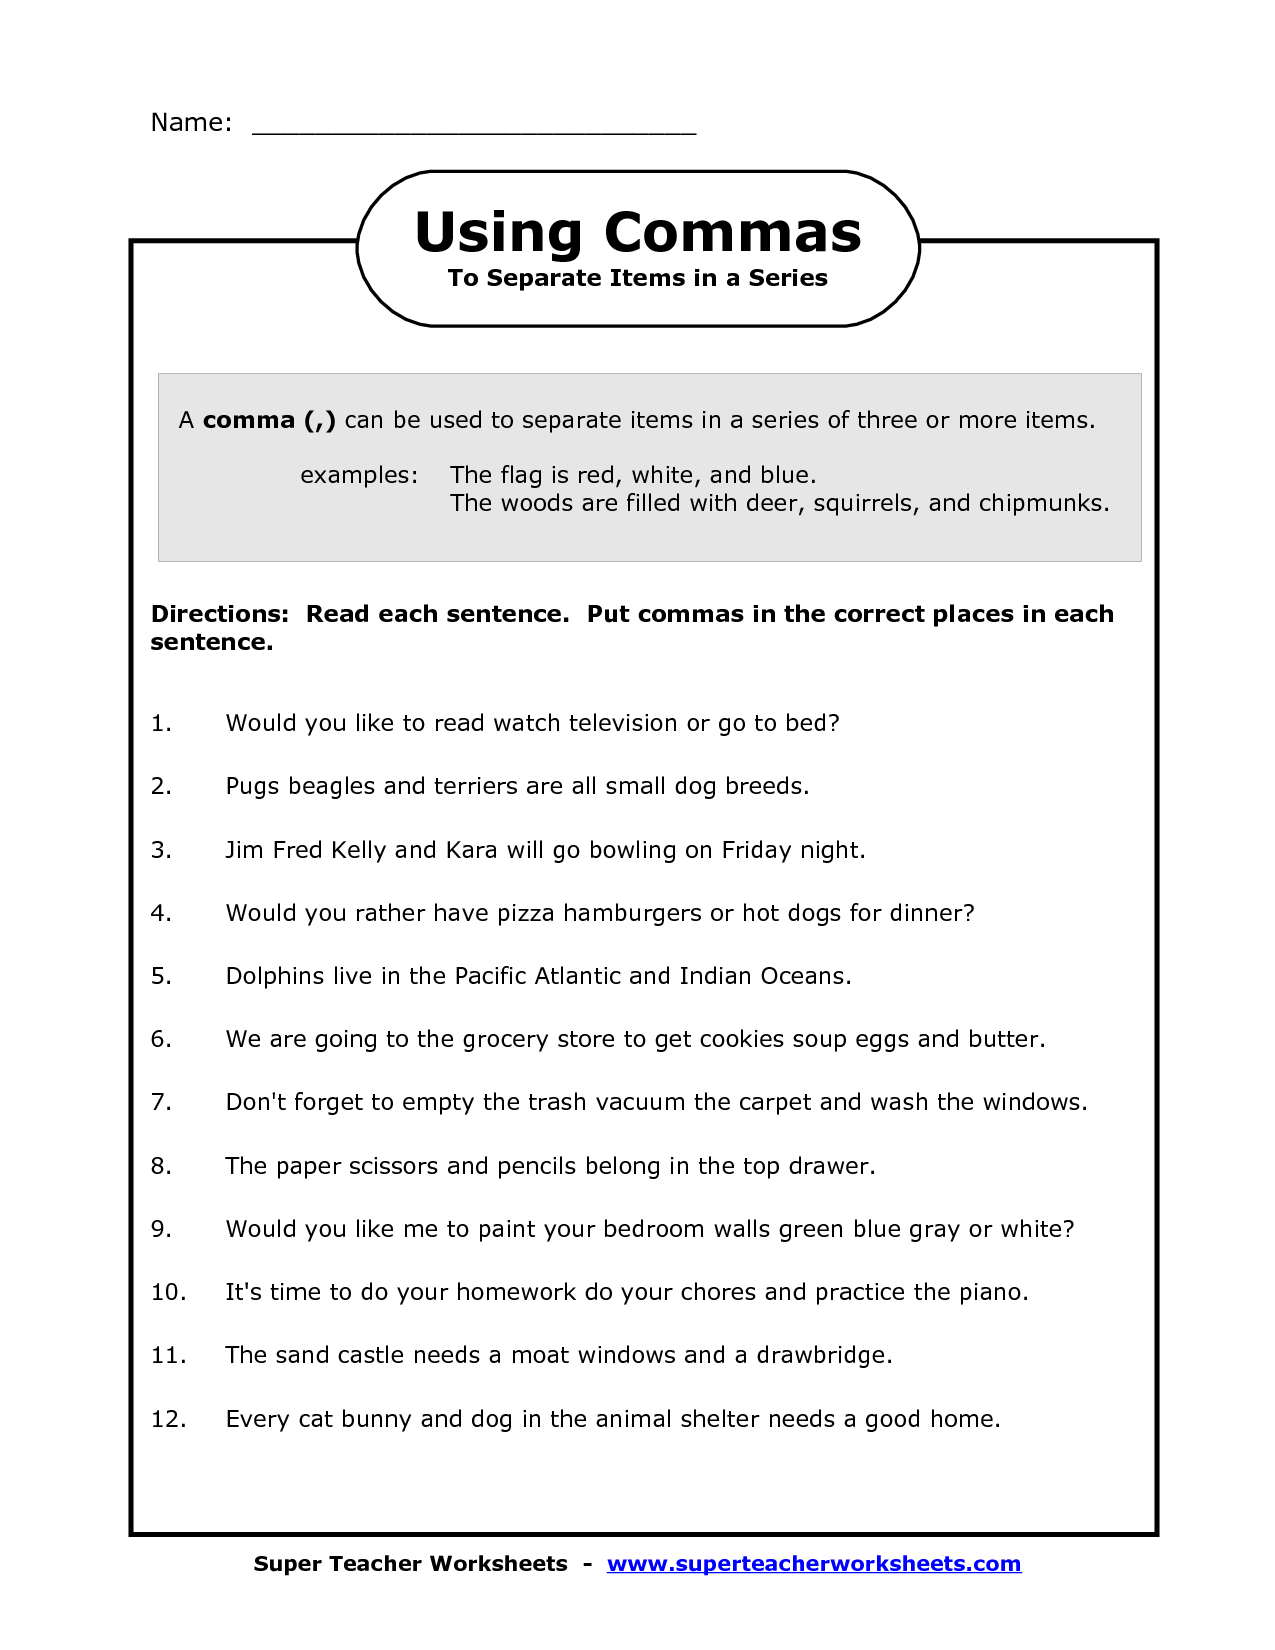 comma in a series worksheets image   Commas in a Series Worksheet   Punctuation  worksheets [ 1650 x 1275 Pixel ]